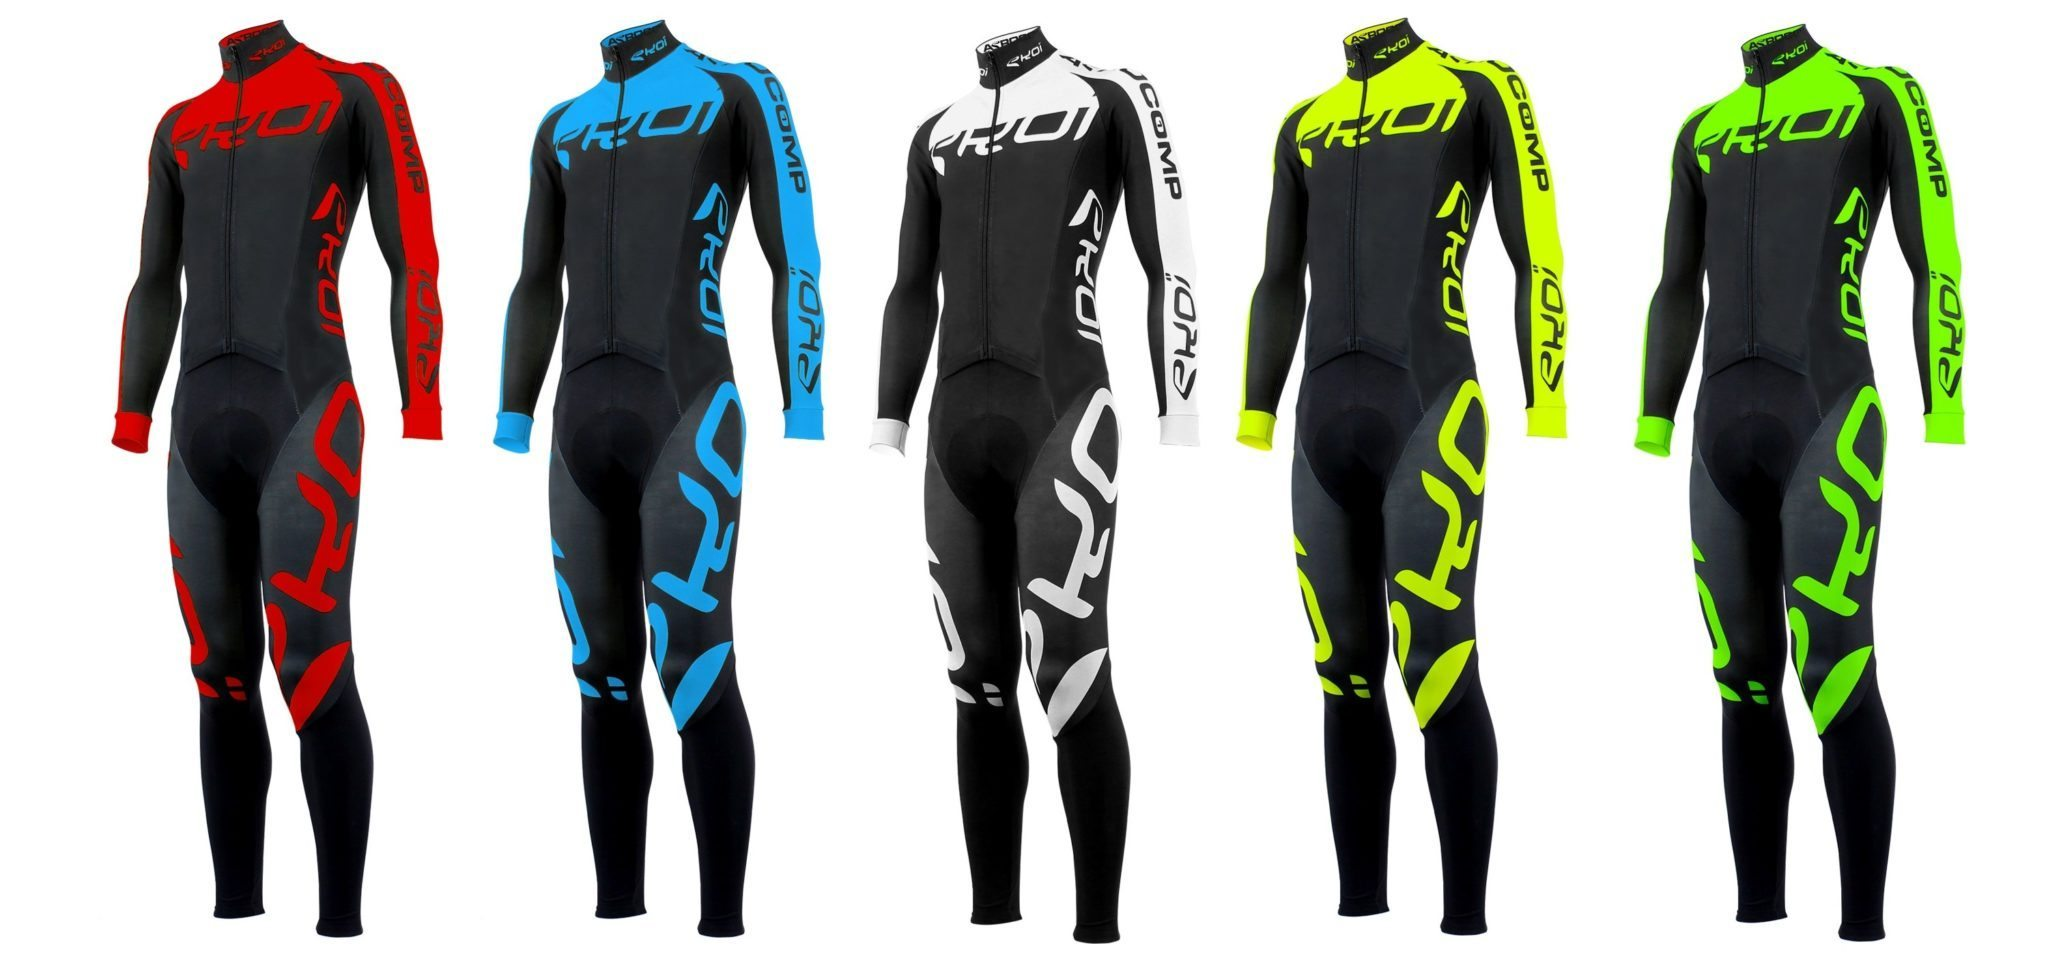 Autumn/Winter Special: Ekoi Aerocomp Thermal Suit Review